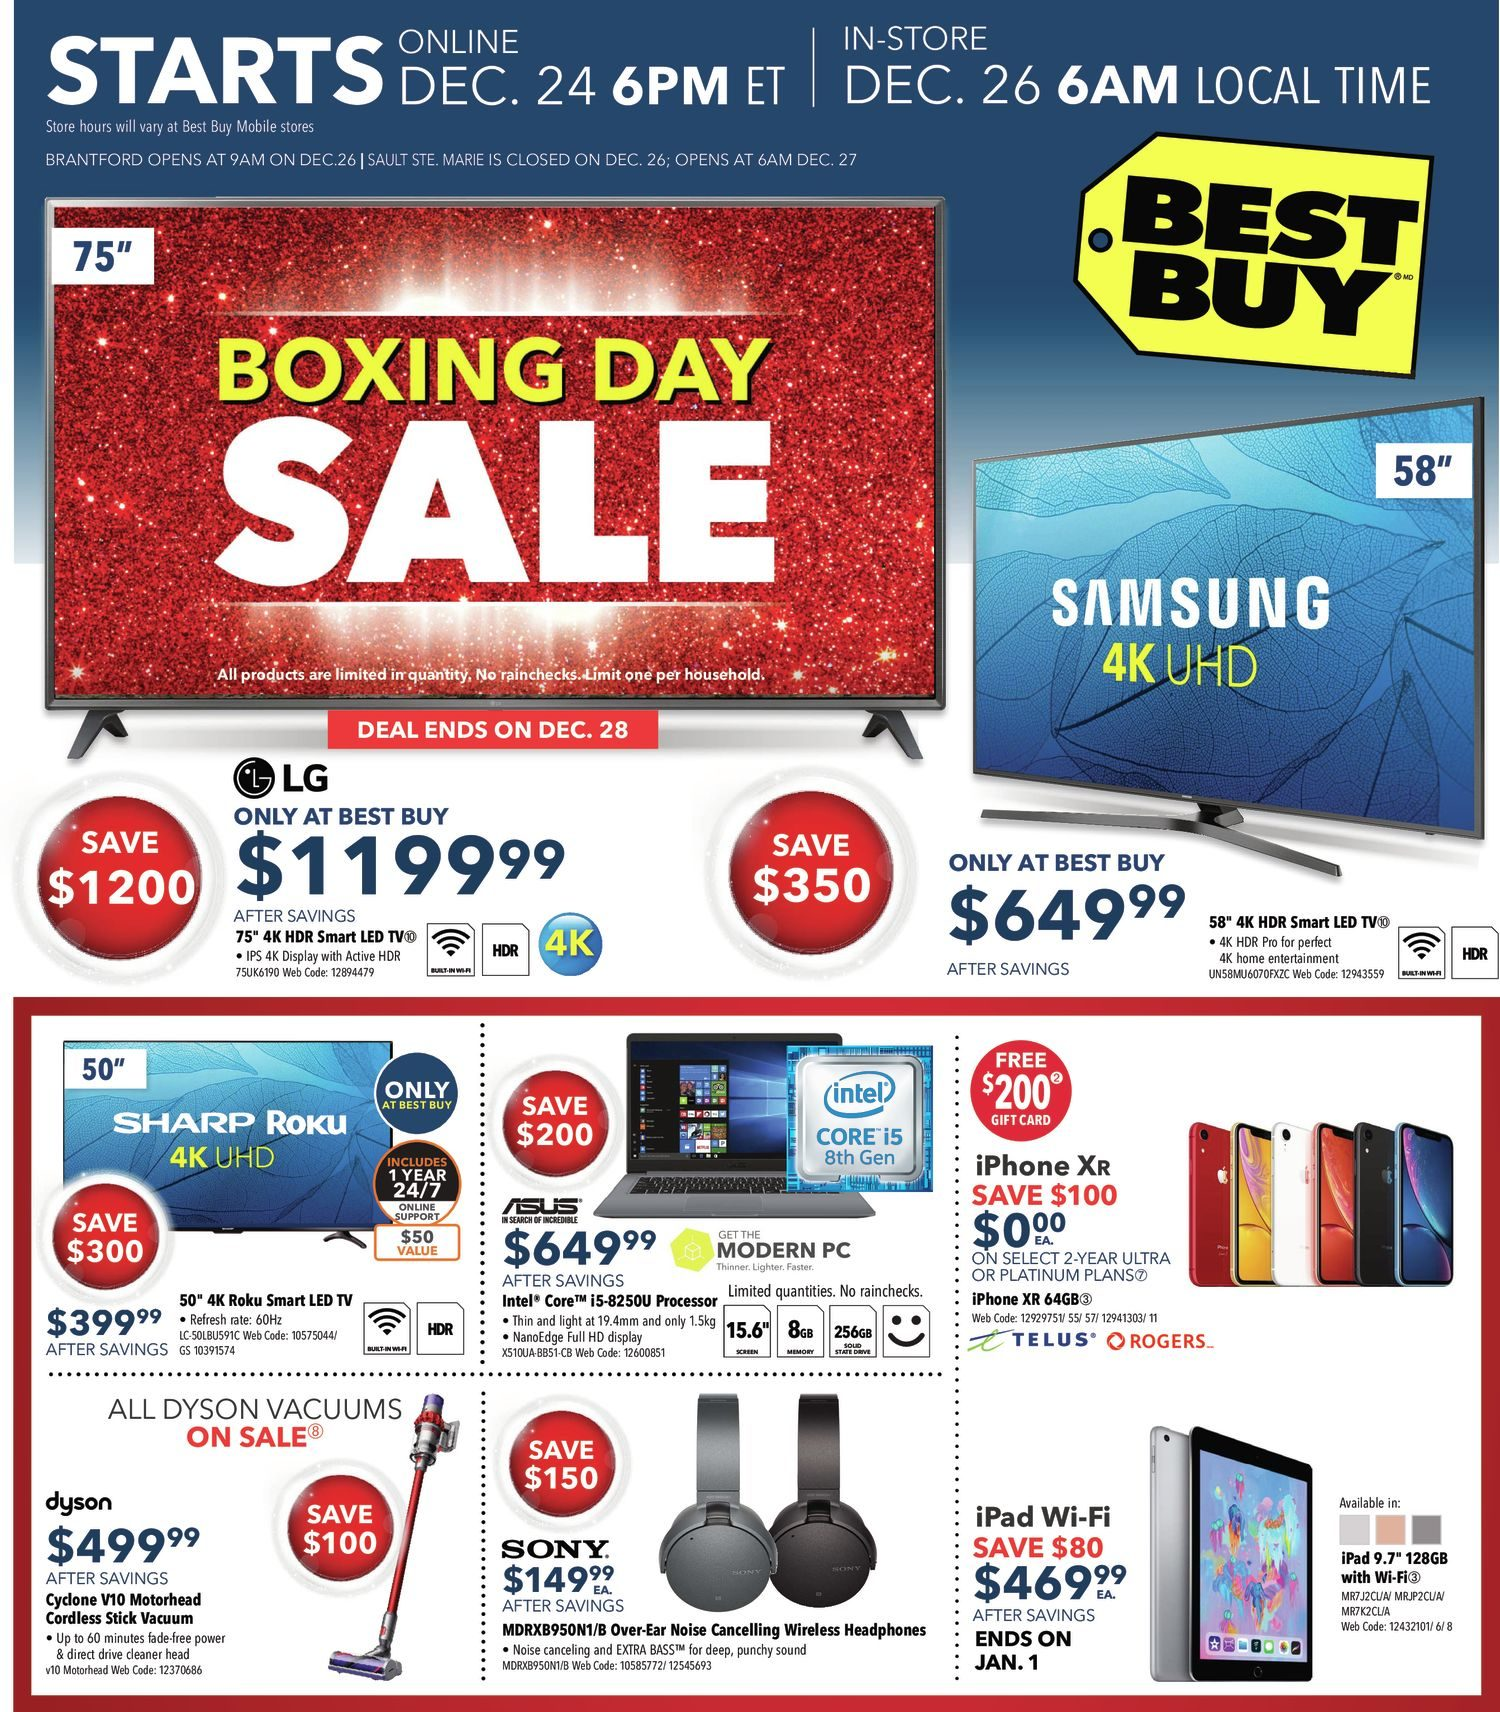 redflagdeals boxing day 2019